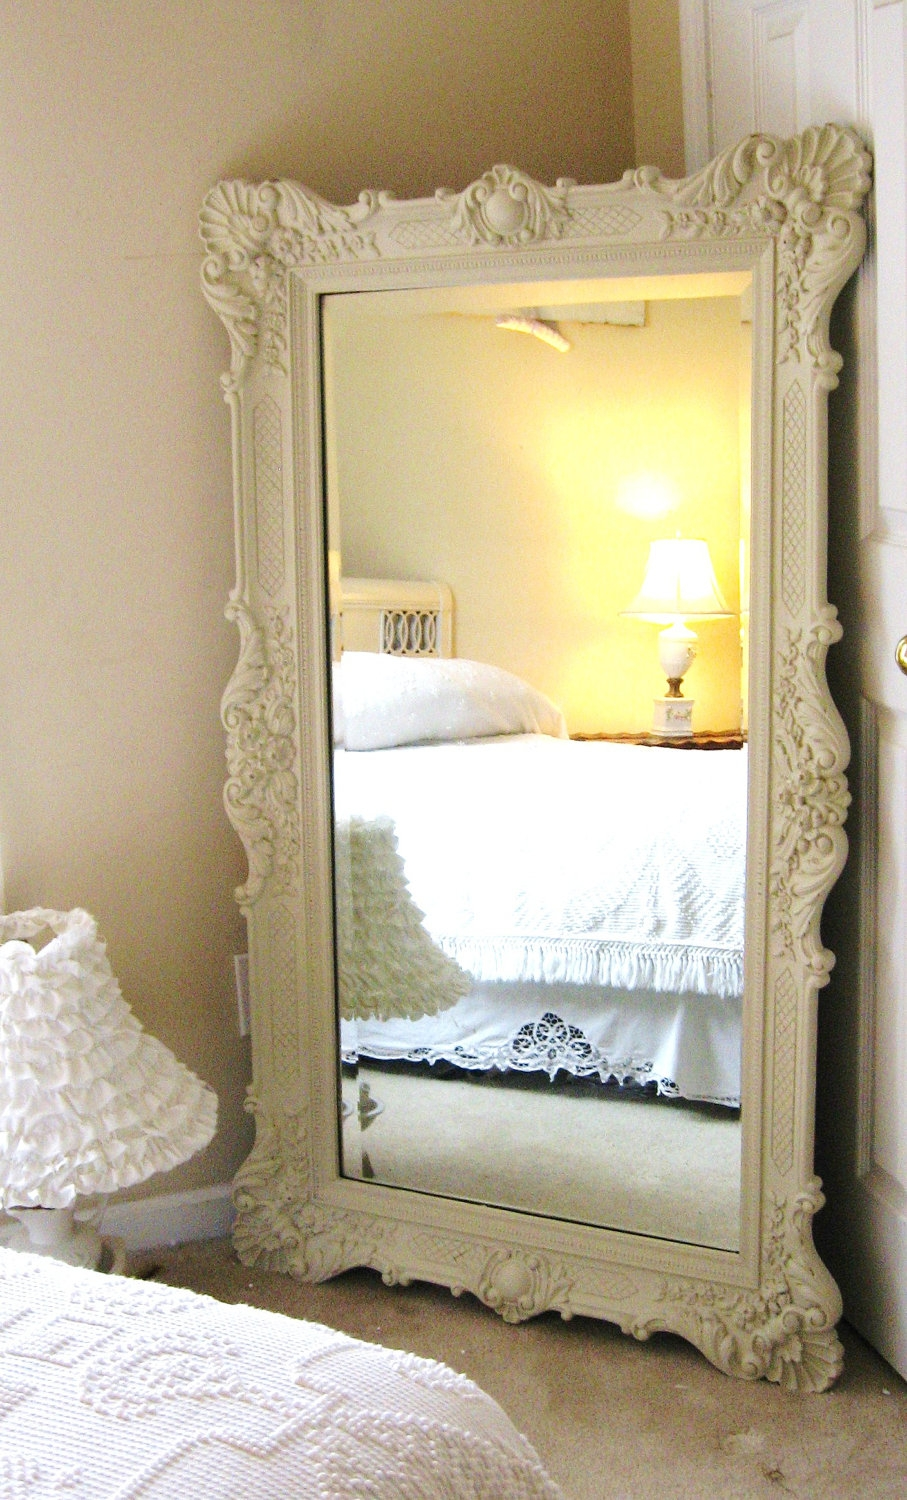 D R E S S I N G Mirror Vintage Leaning Mirror Floor Mirror With Vintage Stand Up Mirror (Image 3 of 15)